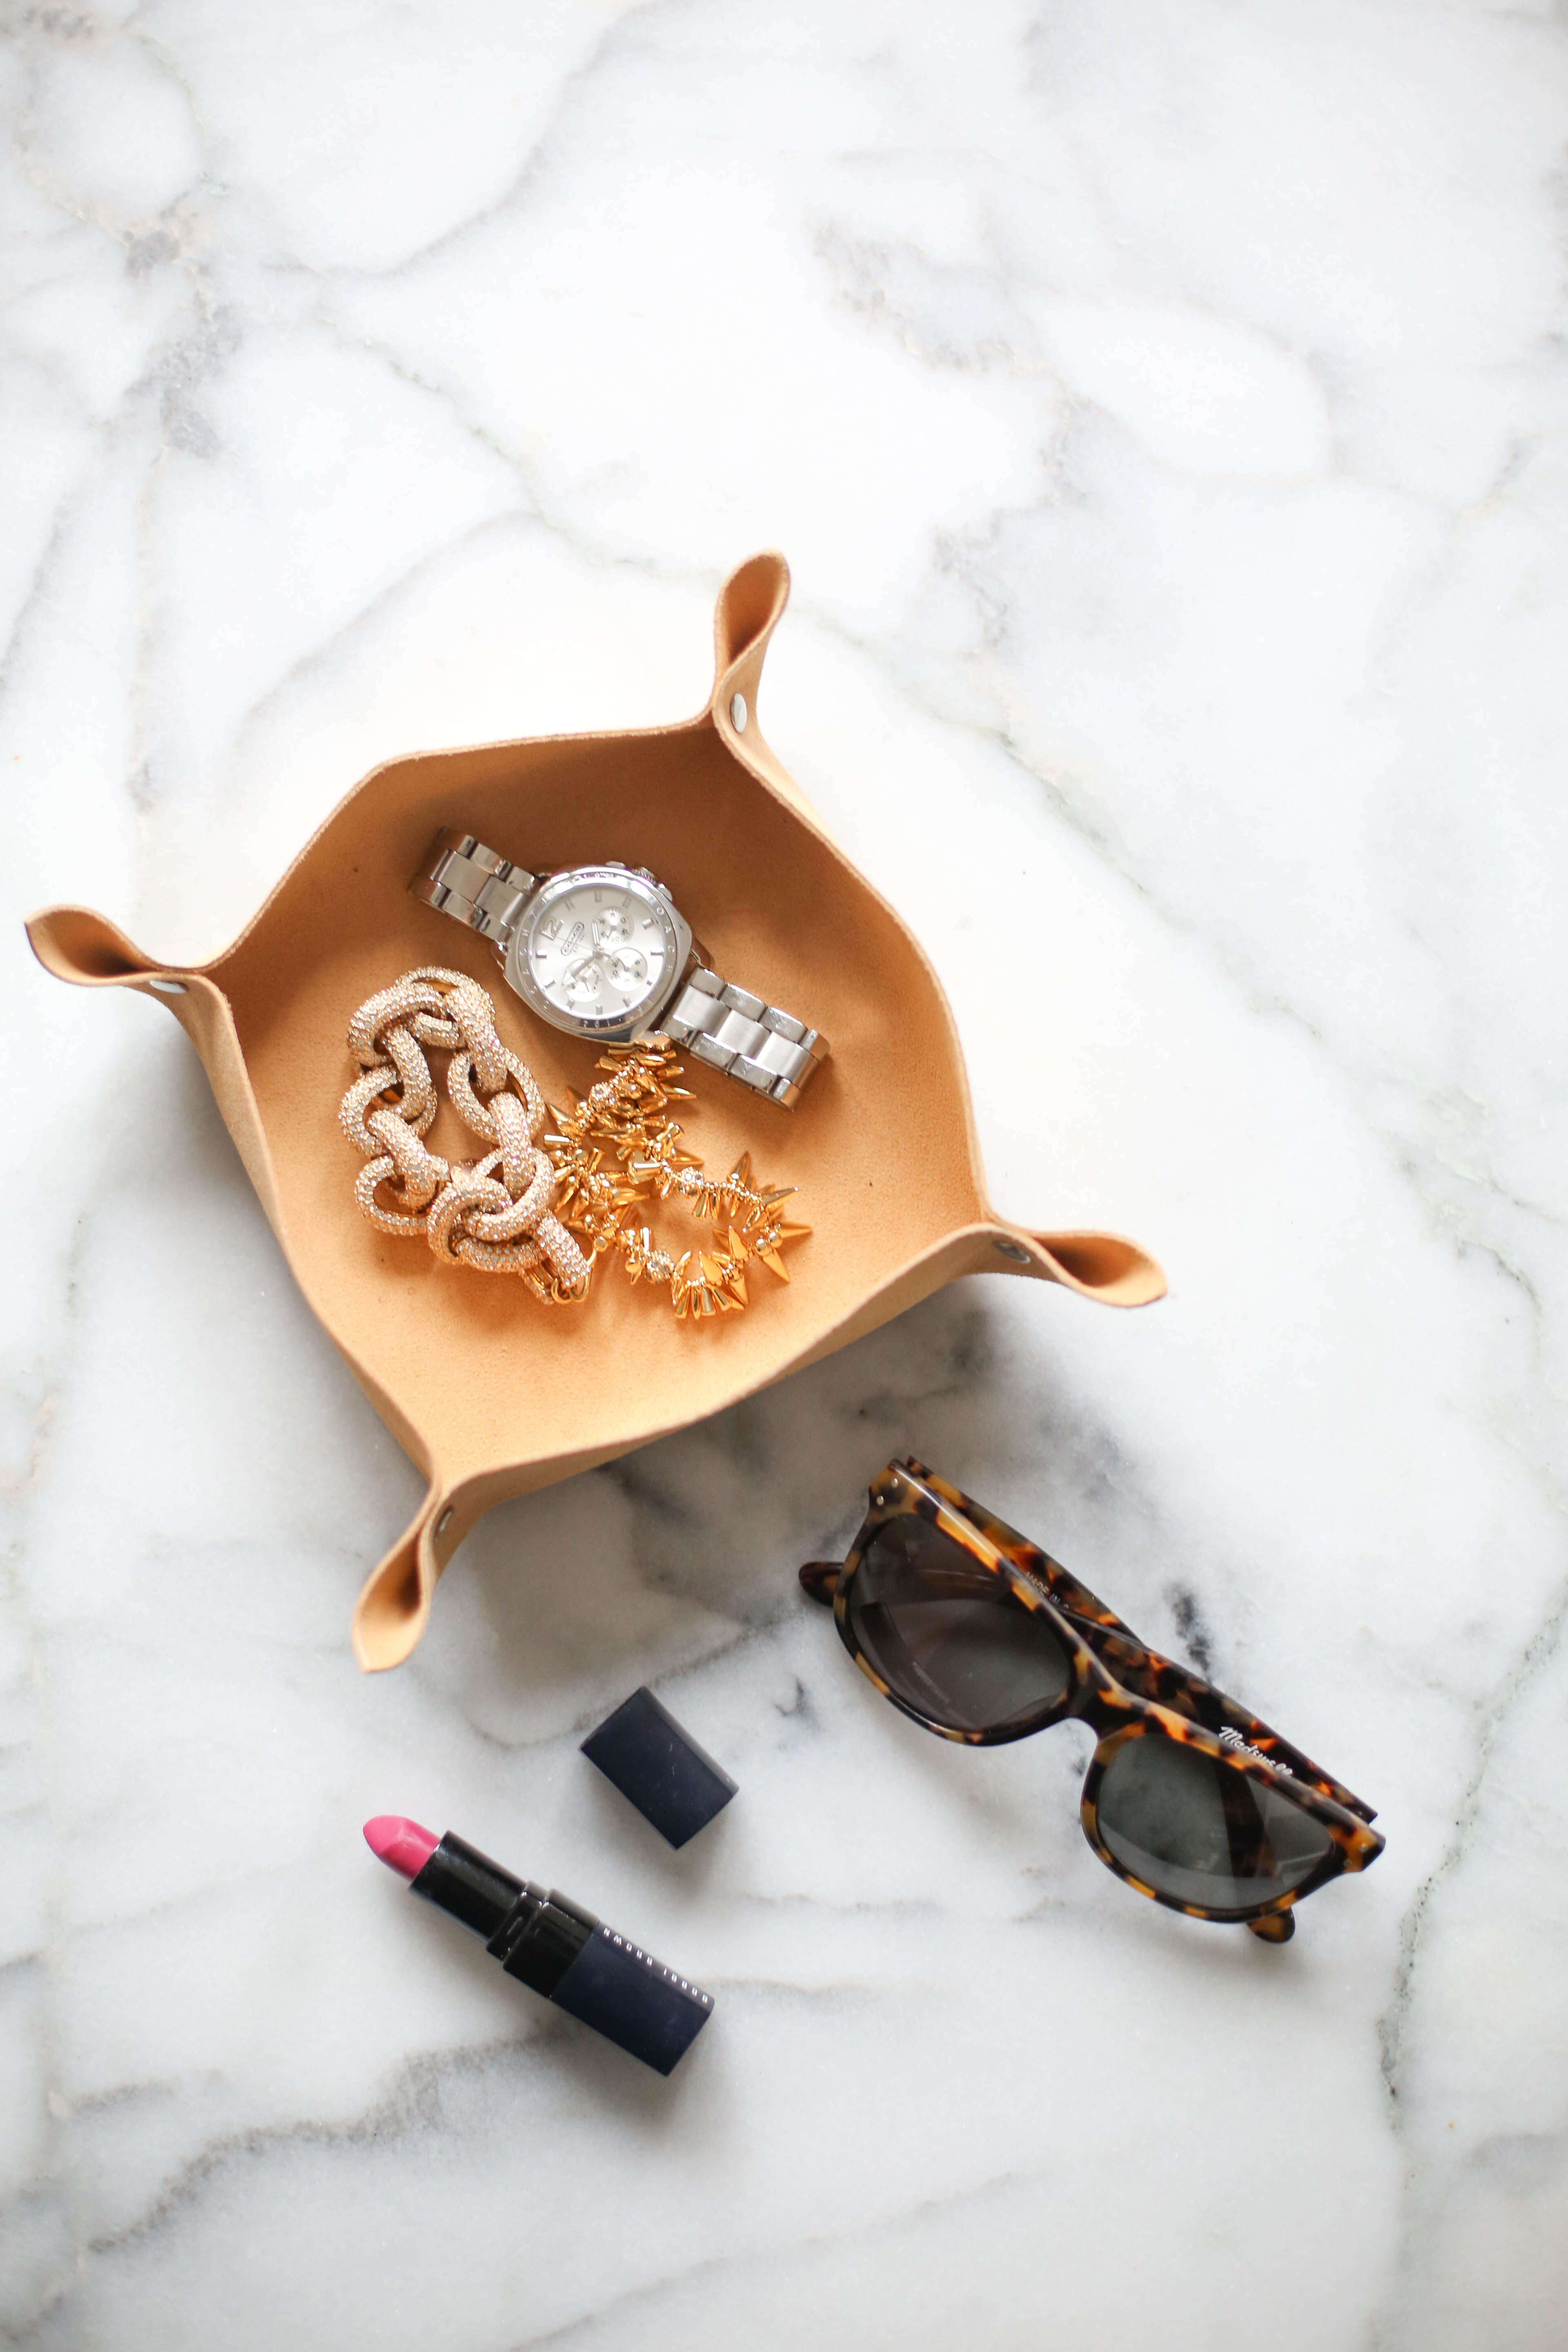 DIY cute leather catchall tray for jewelry